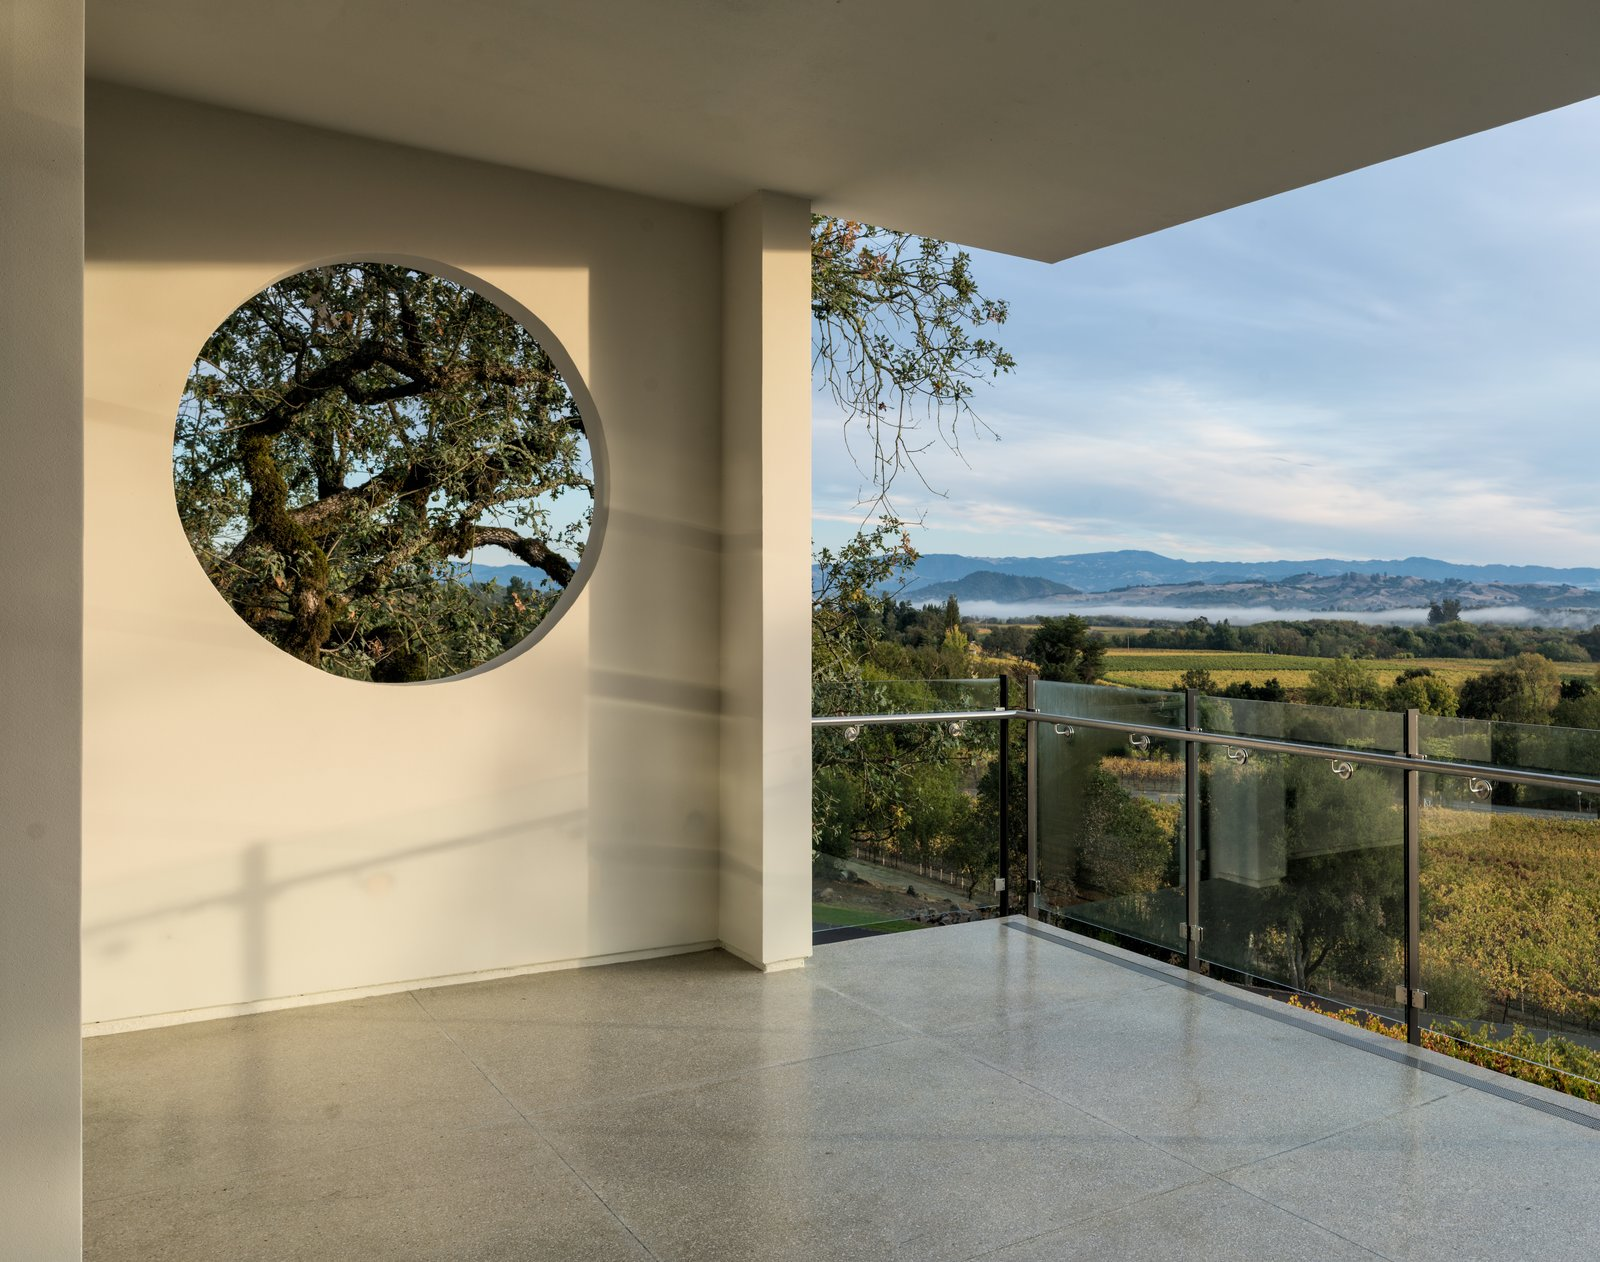 Outdoor, Trees, Hardscapes, and Concrete Patio, Porch, Deck Framed views of the surrounding landscape from main floor level  Hilltop Haven by Randy Thueme Design